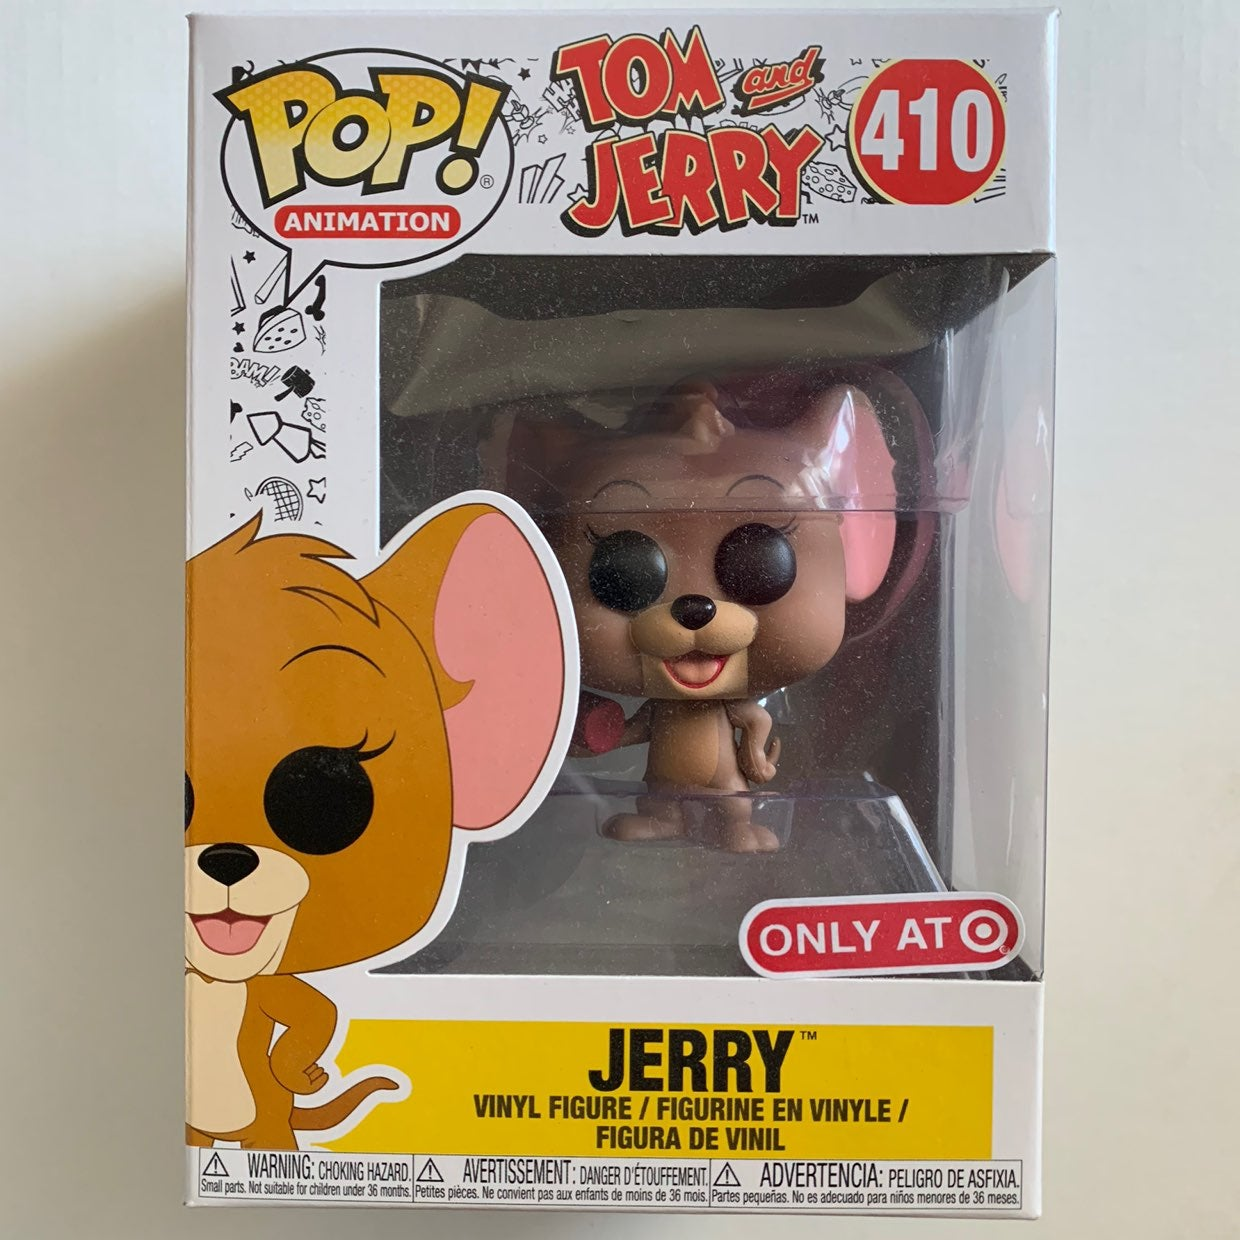 Funko Pop Jerry Target Exclusive